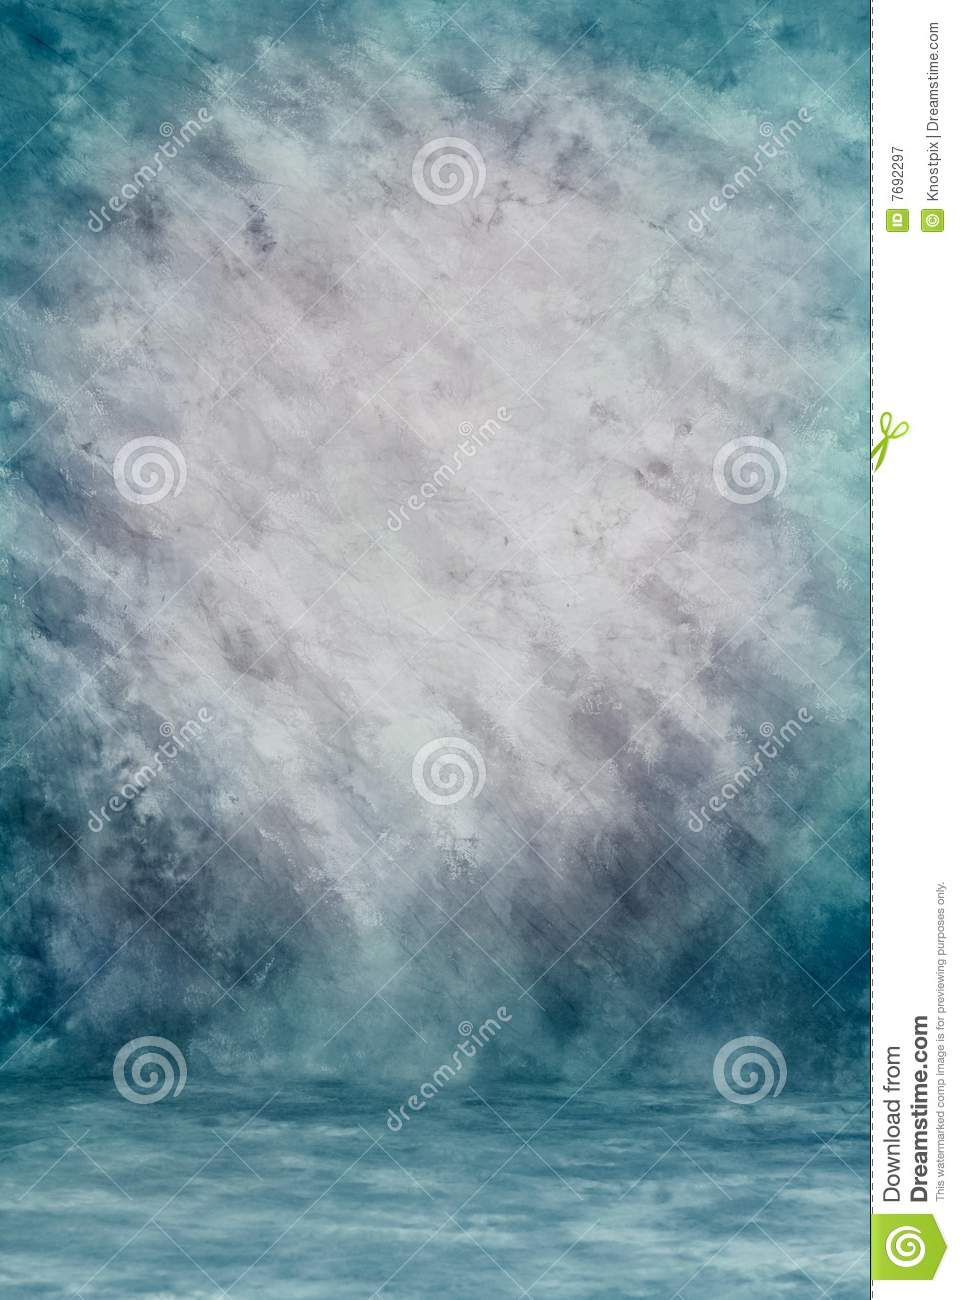 Cloth Studio Backdrop Or Background Stock Image Image Of Wall Painted 7692297